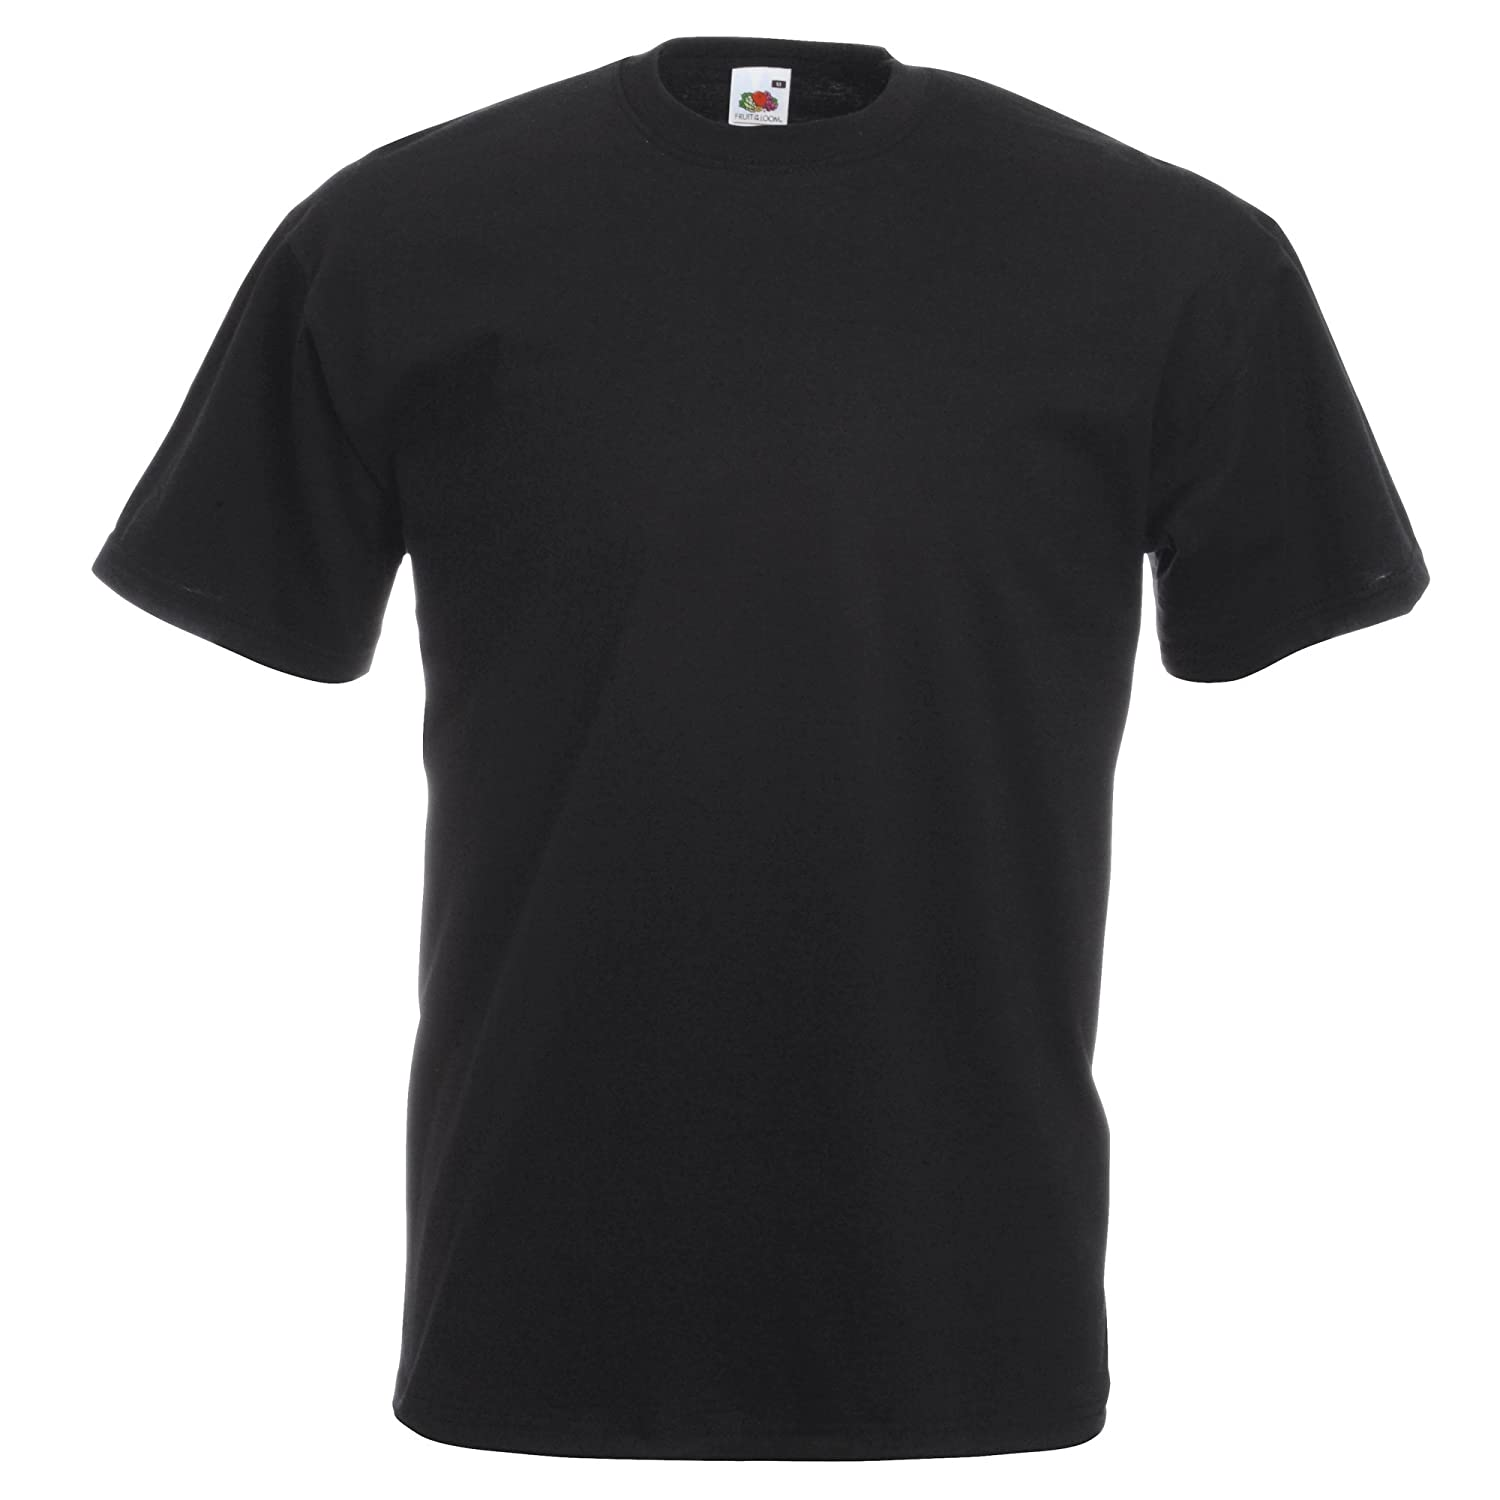 Black t shirt photo - Fruit Of The Loom Mens Valueweight Crew Neck Short Sleeve T Shirt Not V Neck Amazon Co Uk Clothing